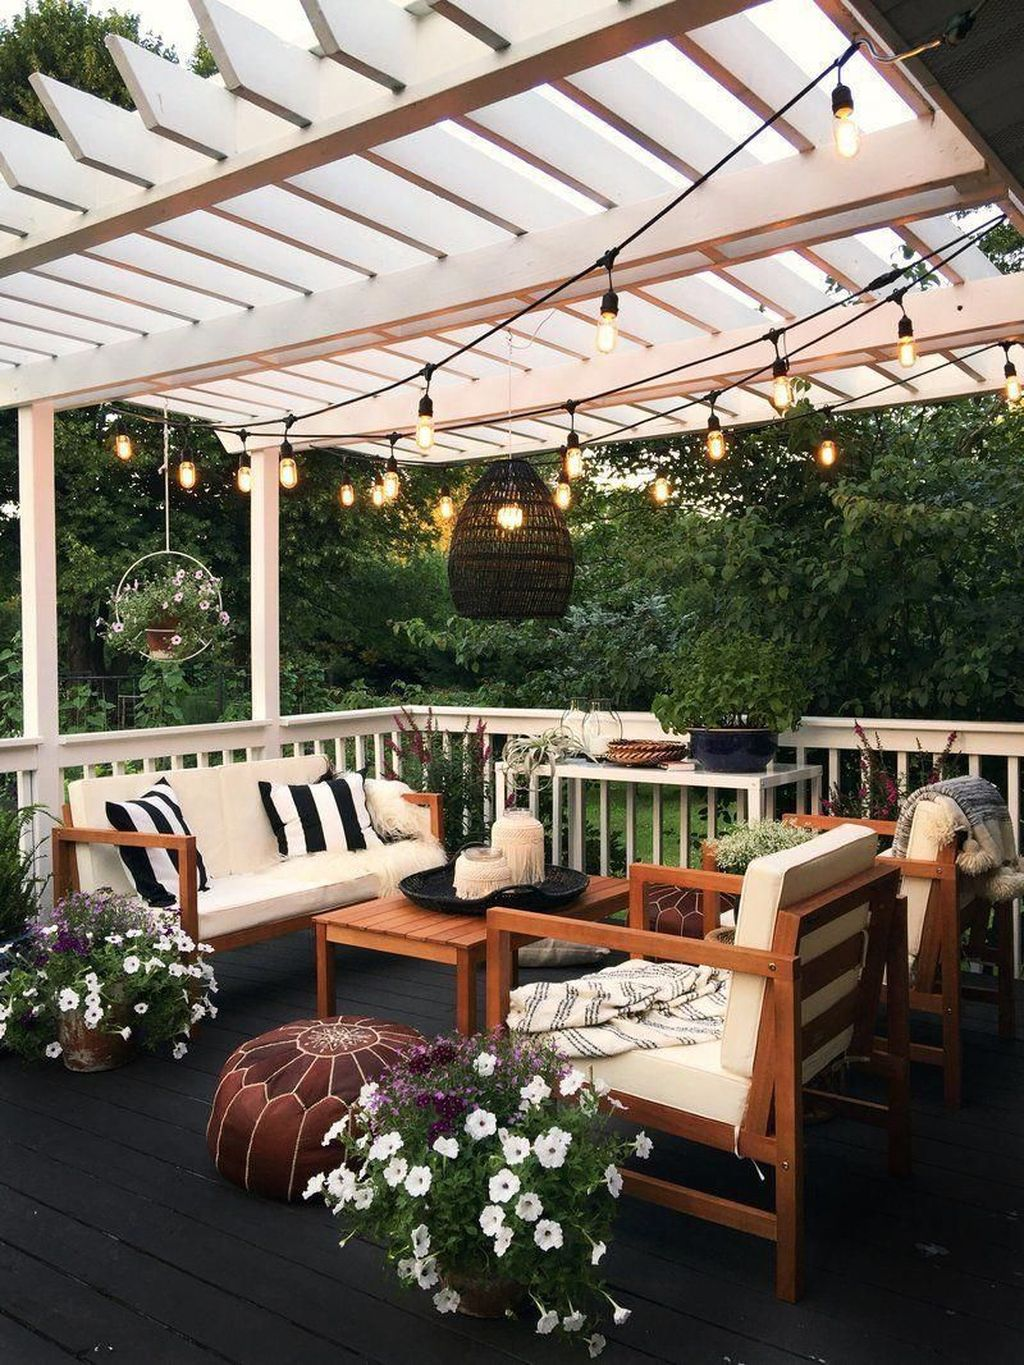 Admirable Cozy Patio Design Ideas To Relaxing On A Sunny Day 36